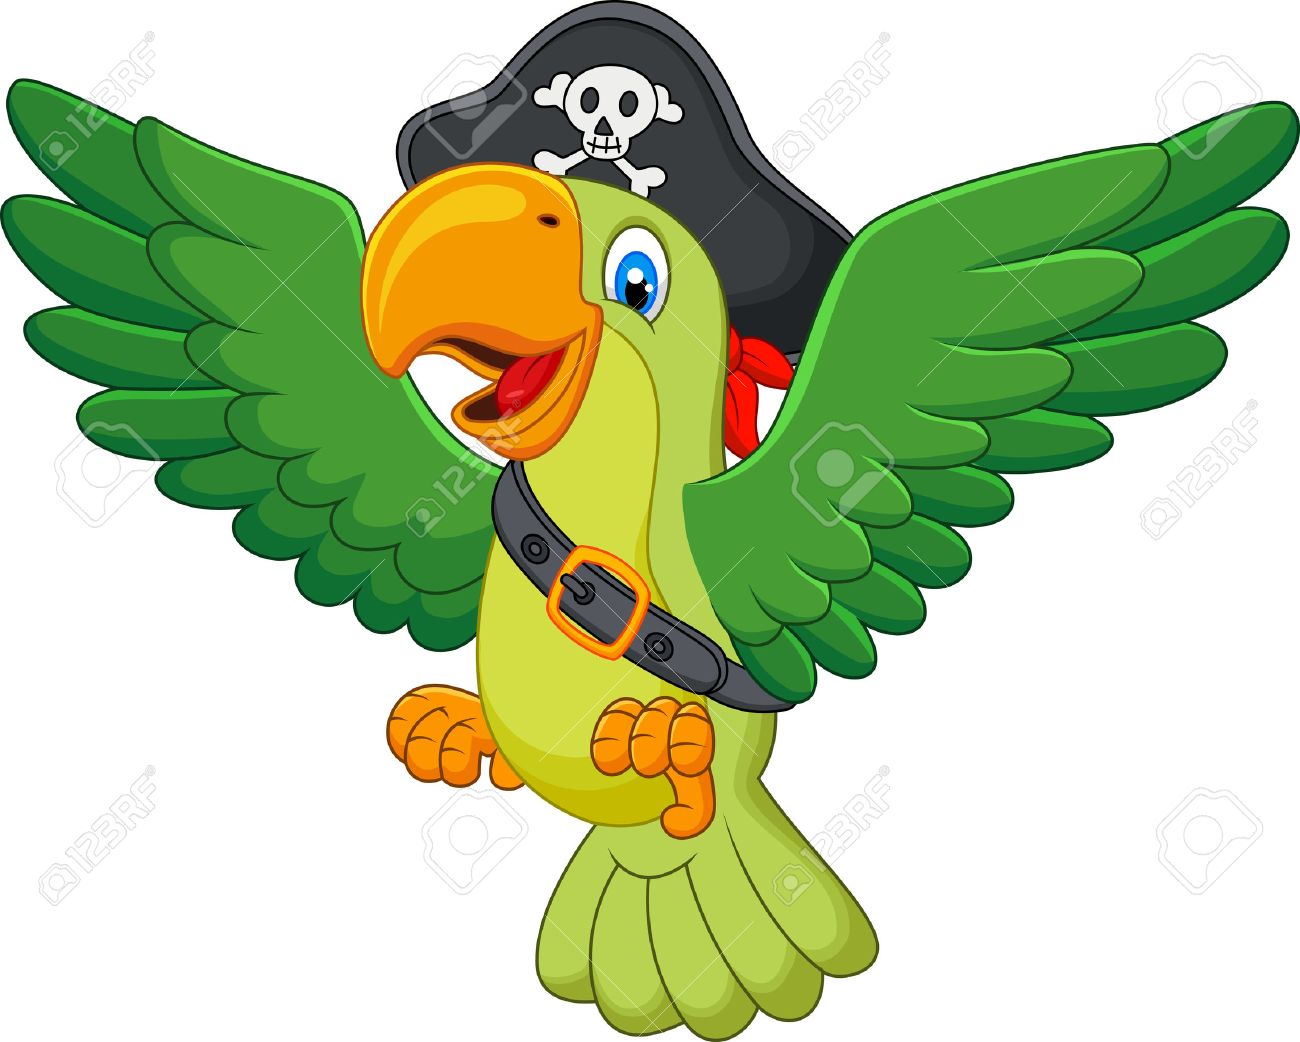 banque dimages cartoon pirate perroquet